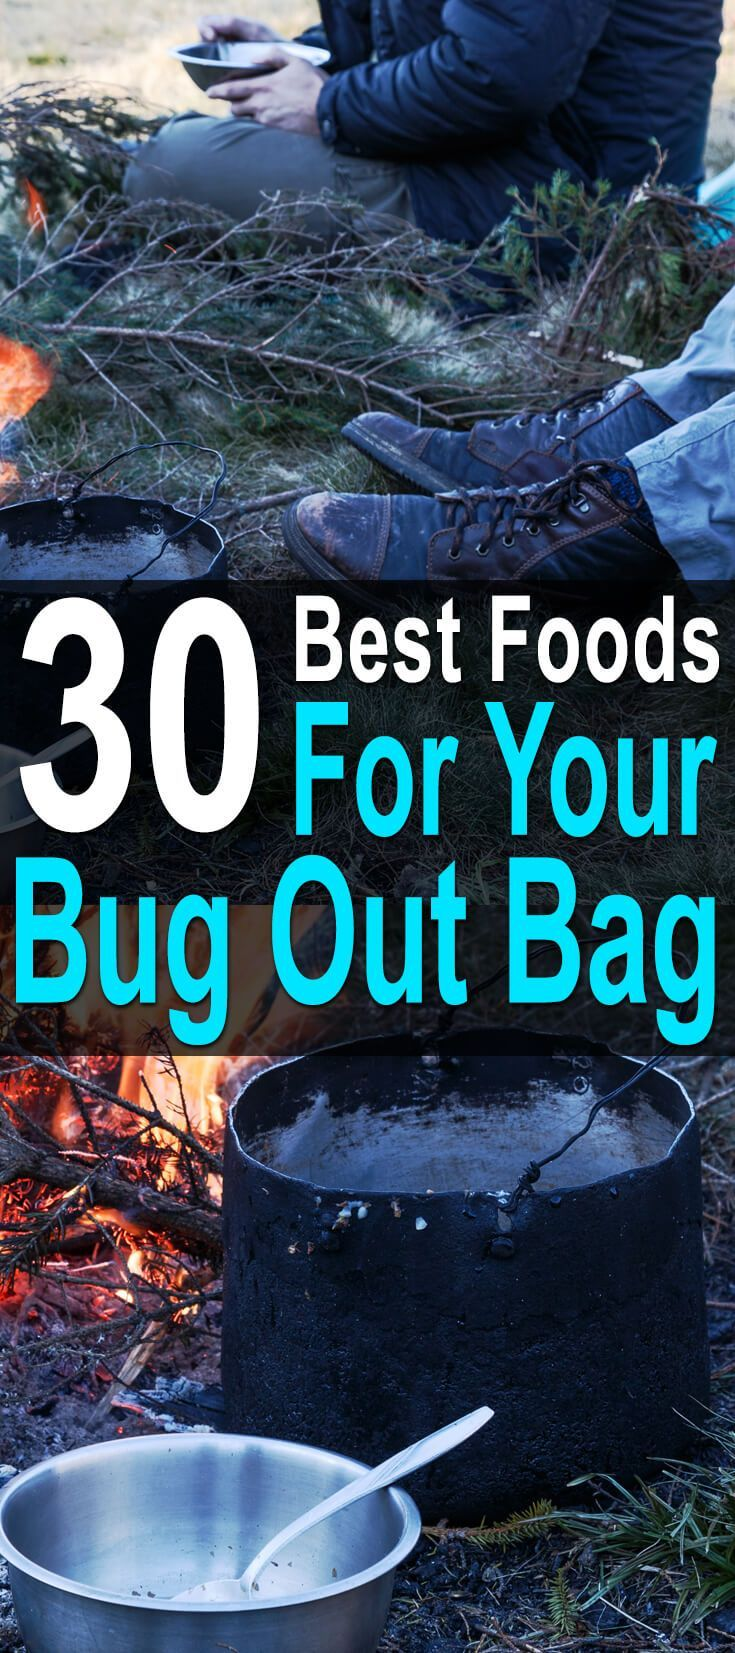 30 Best Foods For Your Bug Out Bag. When choosing foods for your bug out bag, the weight to calorie ratio of your food is the most important thing to consider, but you also need to think about the shelf life, the macronutrients, and how hard it is to prepare. #Urbansurvivalsite #Bugout #Bugoutbags #Foodforbuggingout #Offthegrid